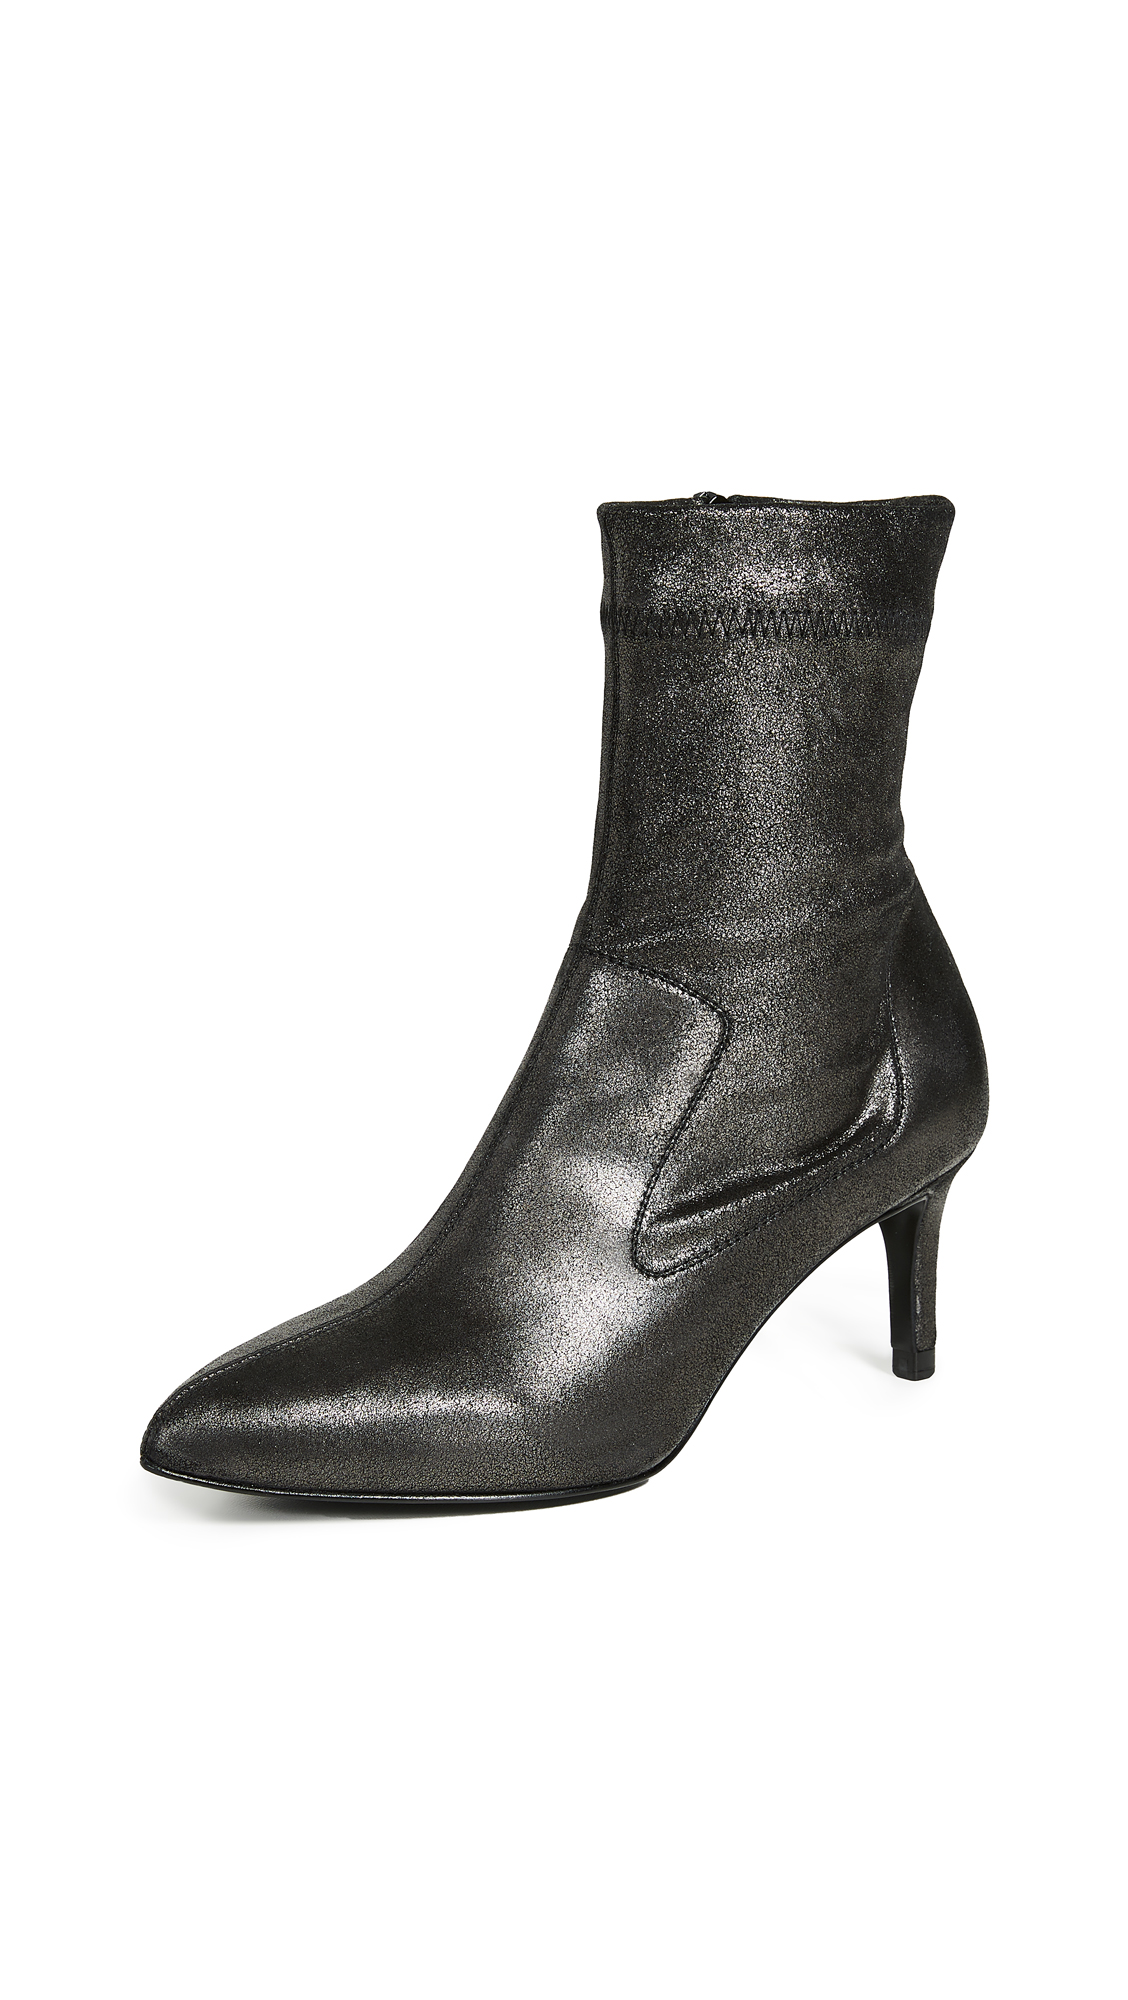 Pedro Garcia Ernesta Booties In Anthracite